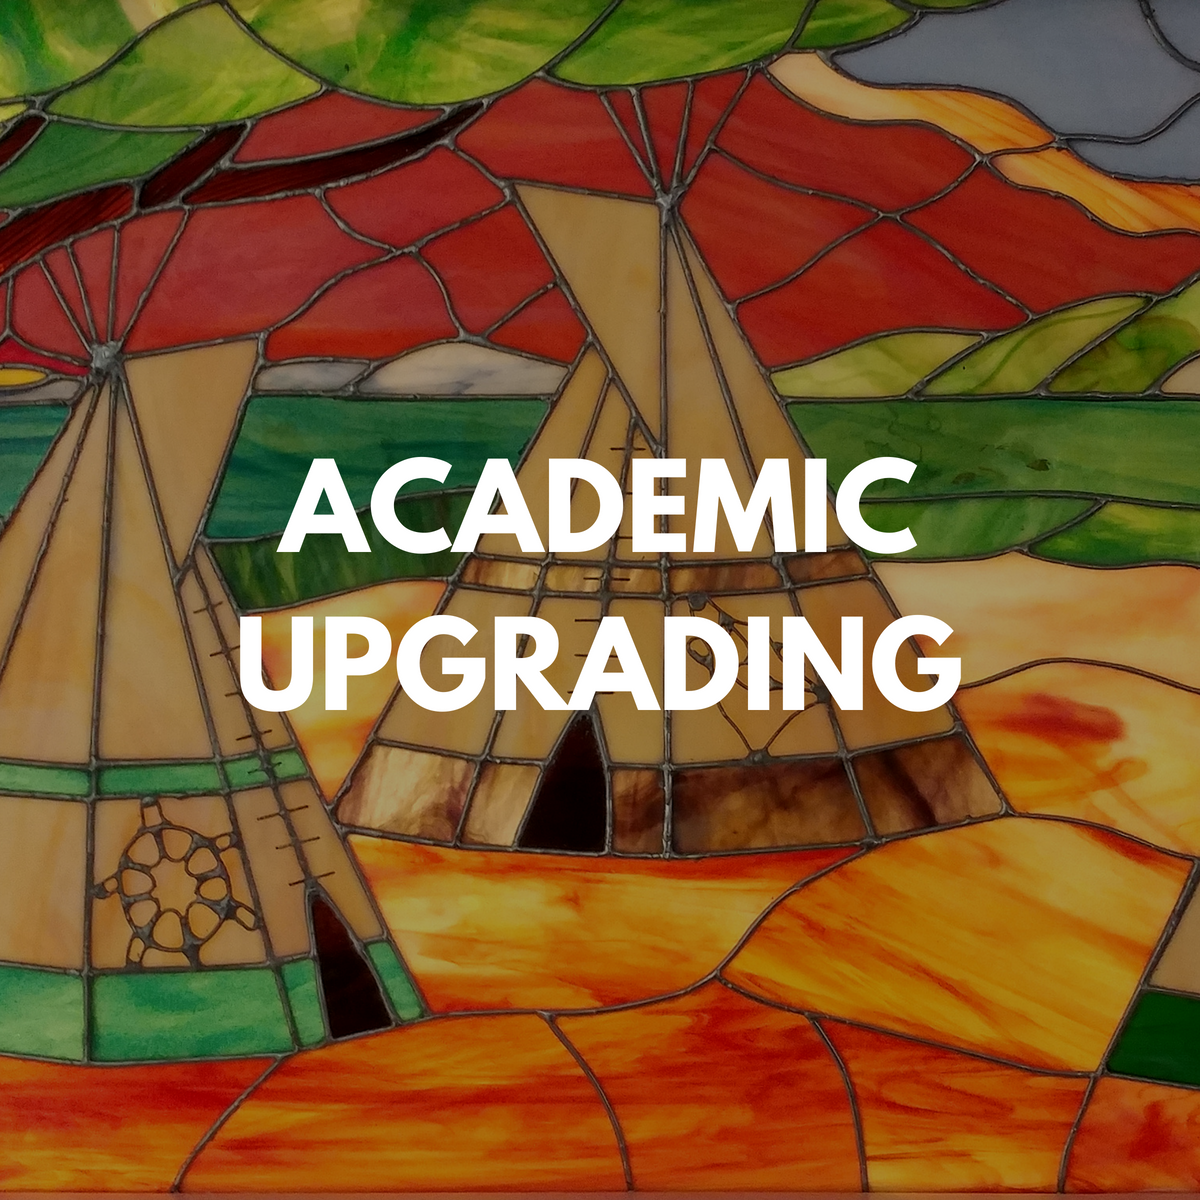 Academic Upgrading